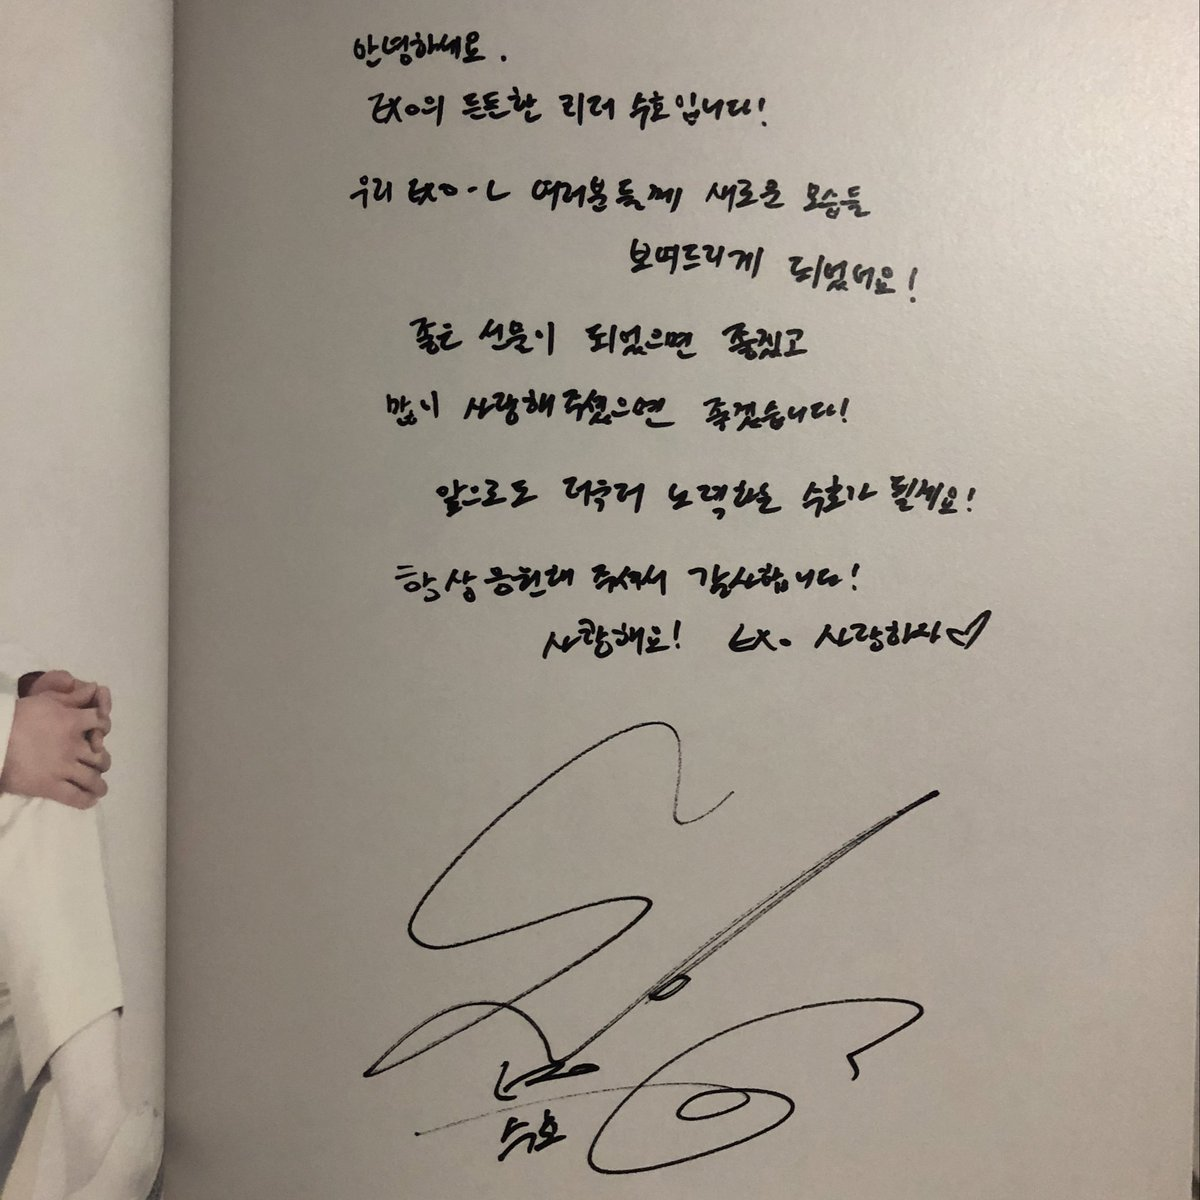 This is EXO's reliable Leader #수호 ! I'm showing a new side of me to our EXO-L! It would be nice if it's a good present & that you show lots of love! In the future, I will become an even more hardworking SH! Thank you for always showing your support! I love you! EXO Let's Love  <br>http://pic.twitter.com/PeIOZdThSP